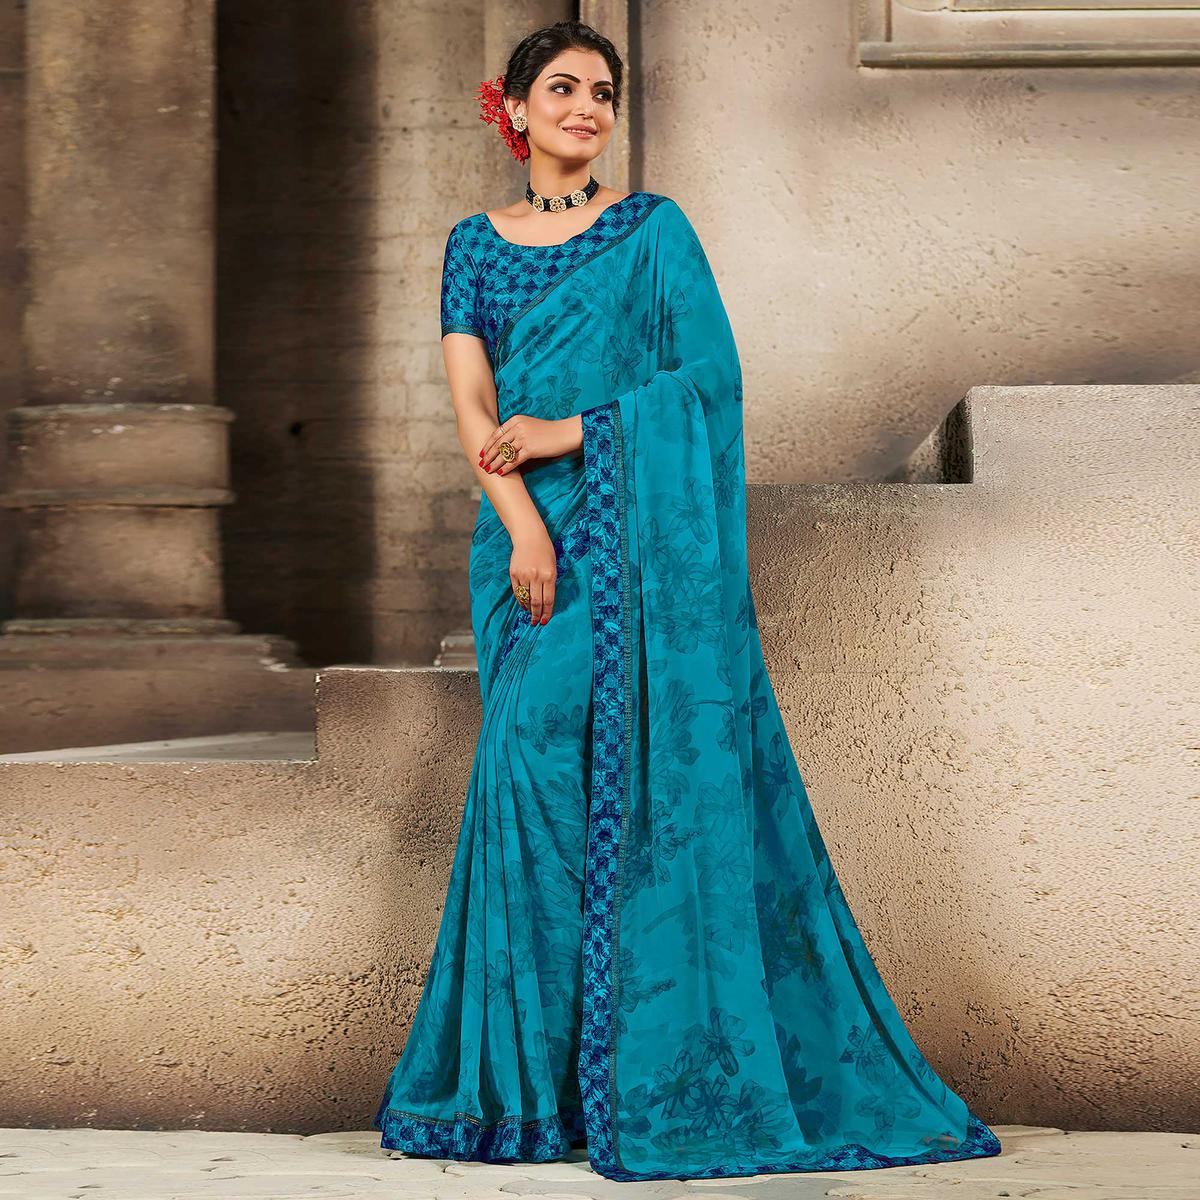 Blue Casual Wear Designer Floral Printed Georgette Saree With Jacquard Lace